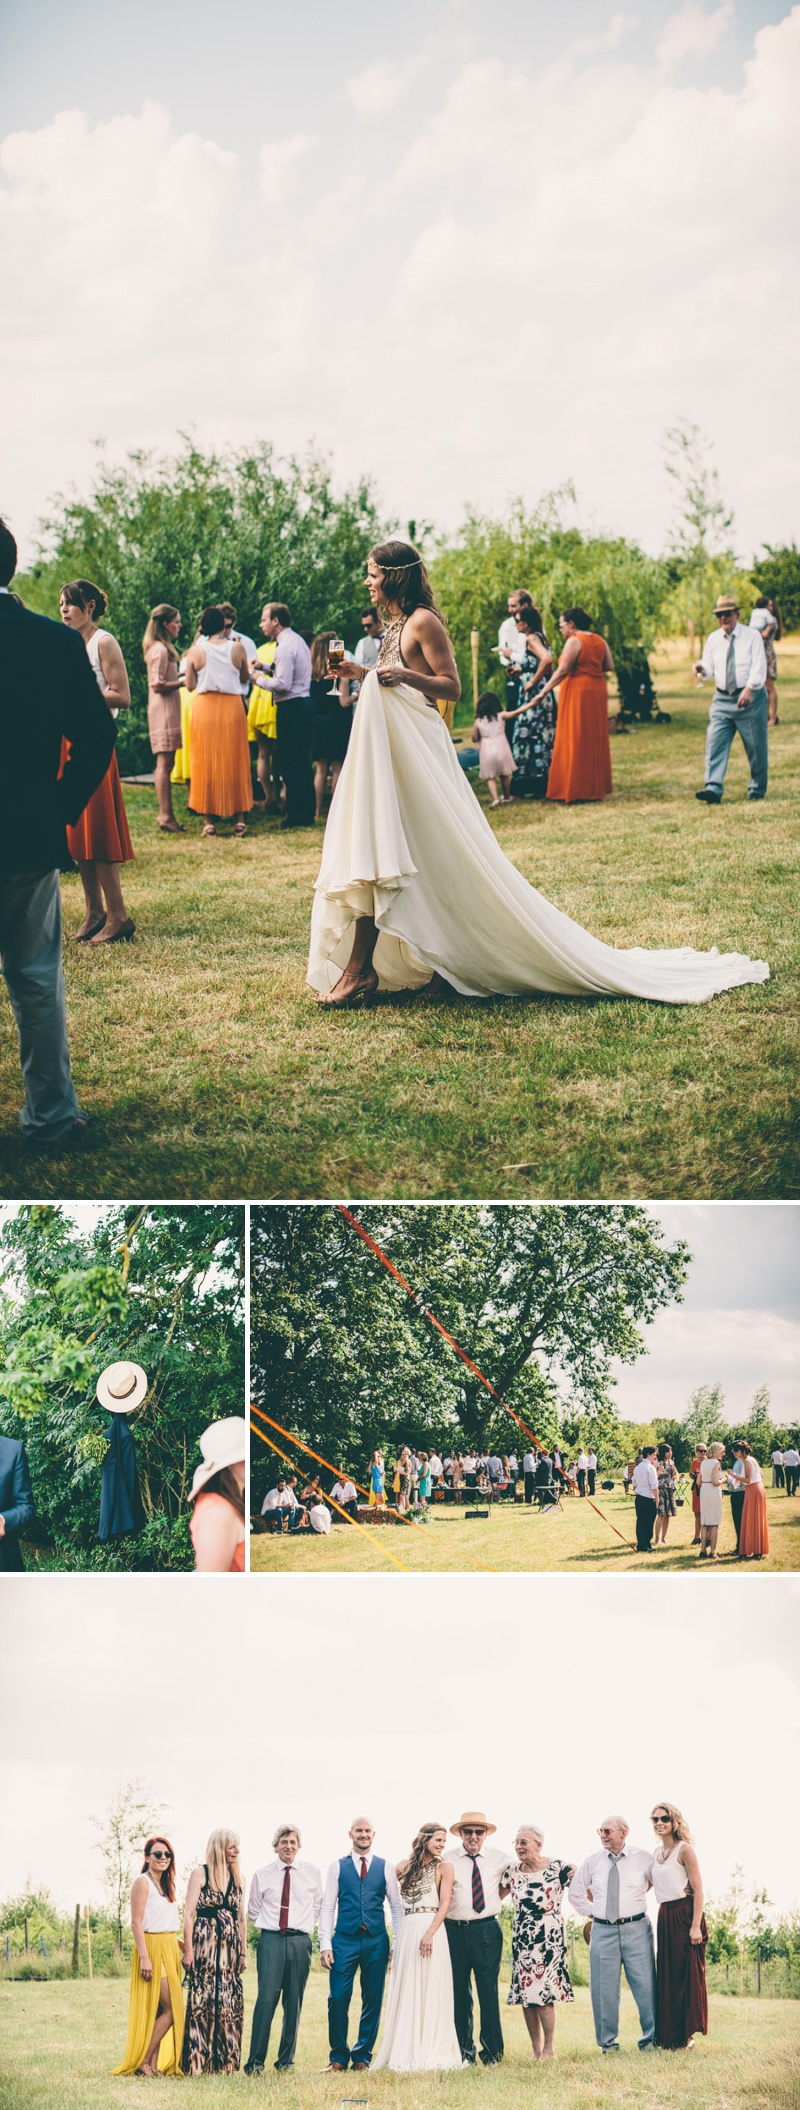 A Maid Marian Festival Inspired Wedding At Glebe Farm With An Amanda Wakeley Cleopatra Dress, Mismatched Bridesmaids And A Vintage Rosie Weisencrantz Headpiece._0011